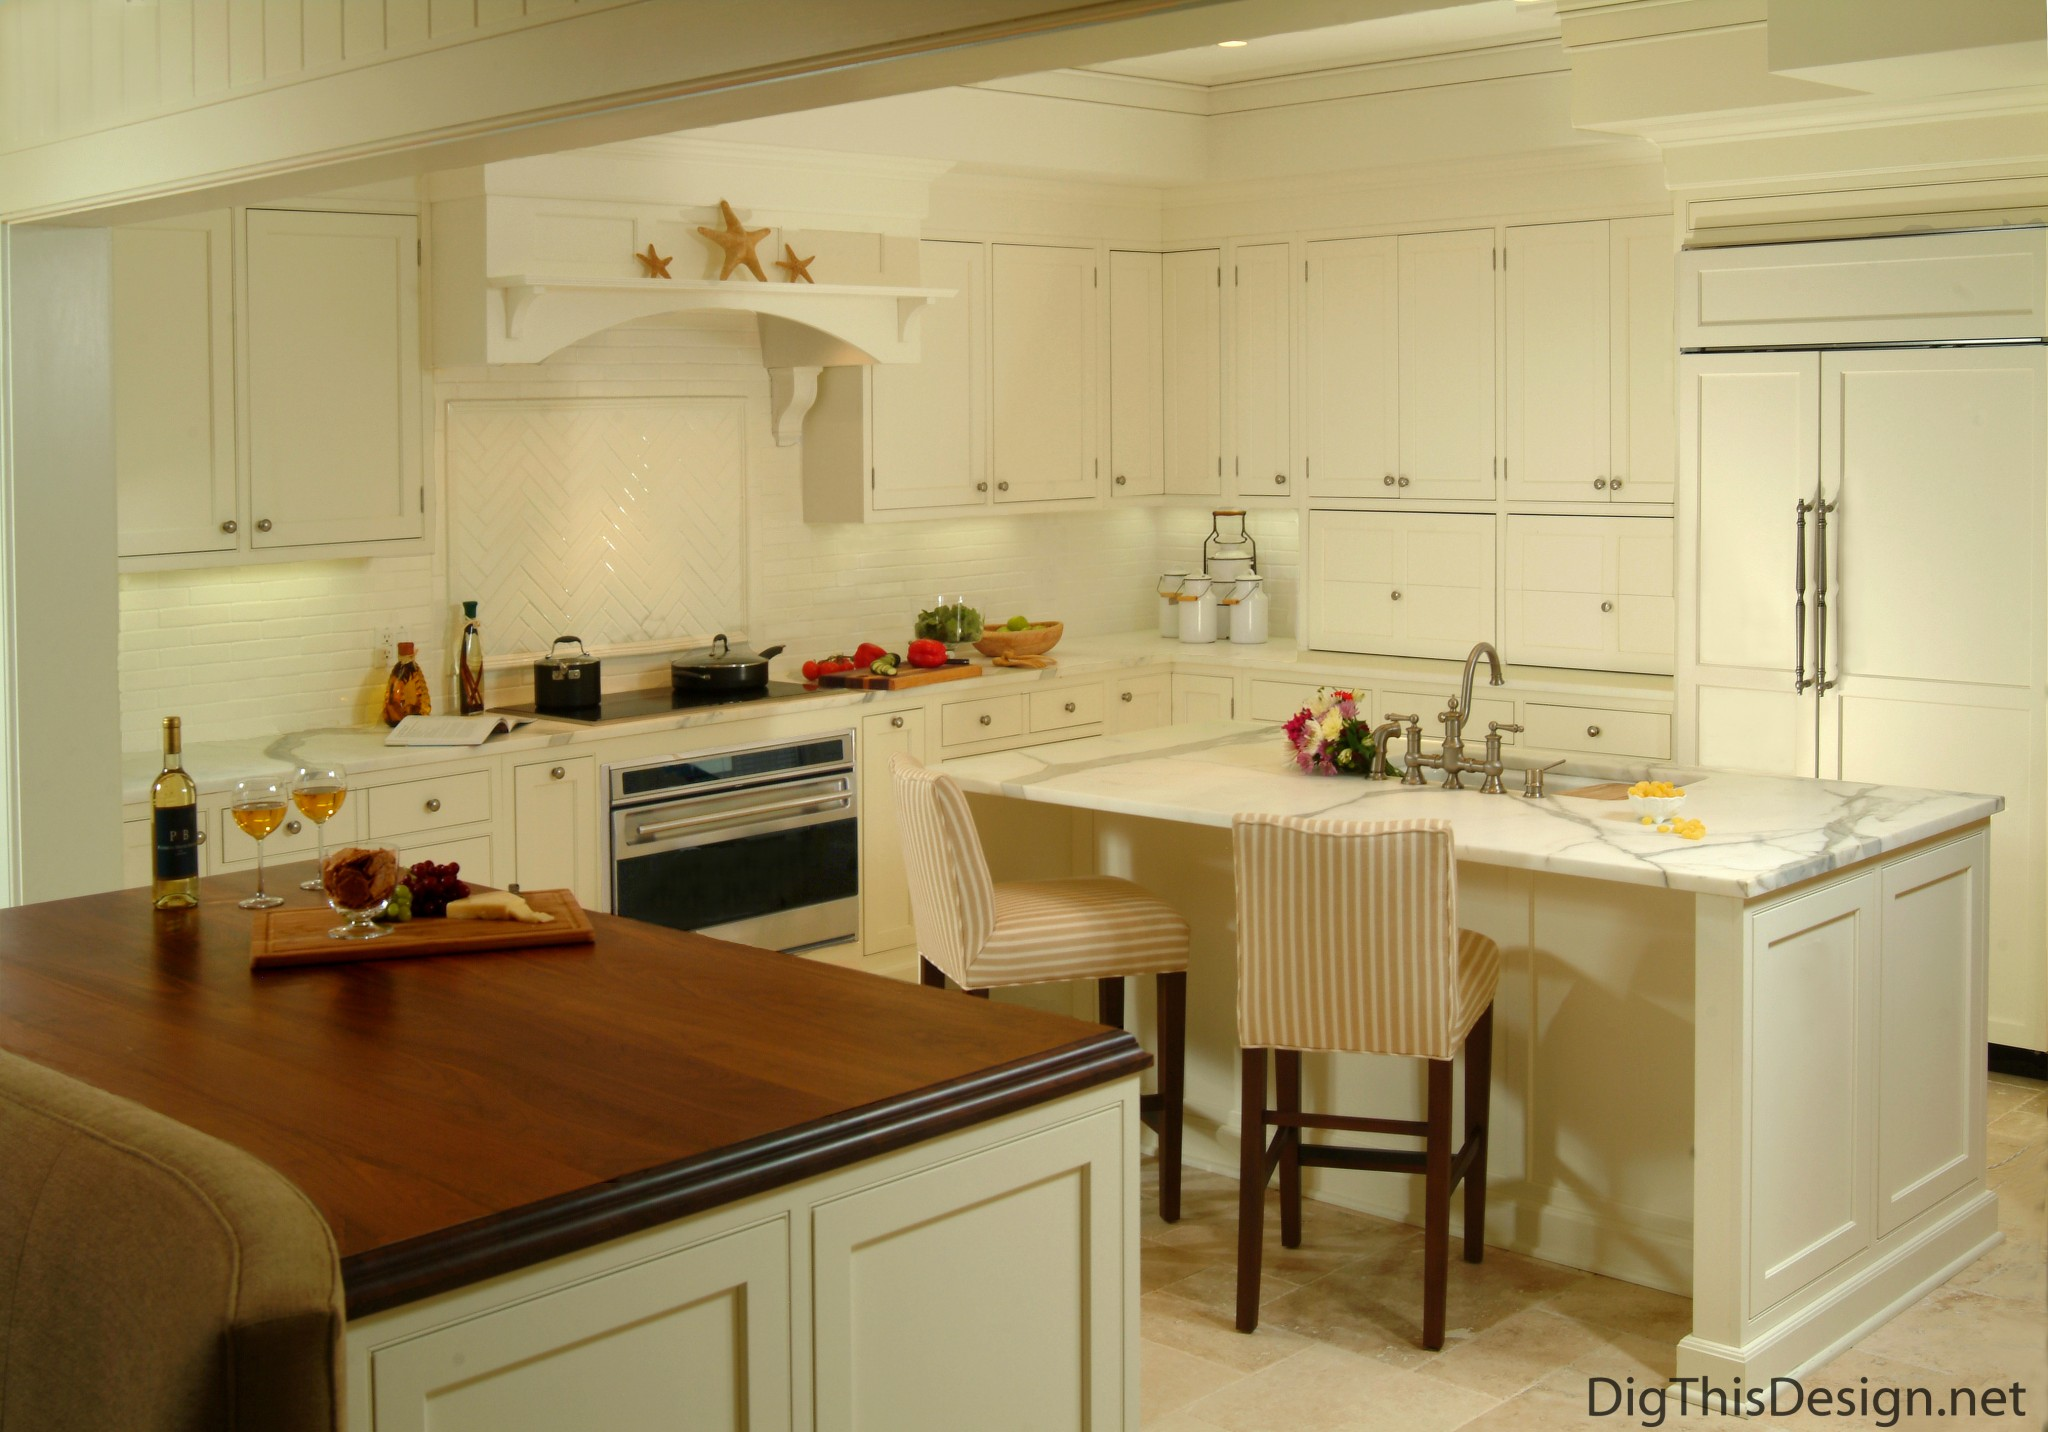 Basic Tips To Lighting Your Kitchen Correctly Dig This Design